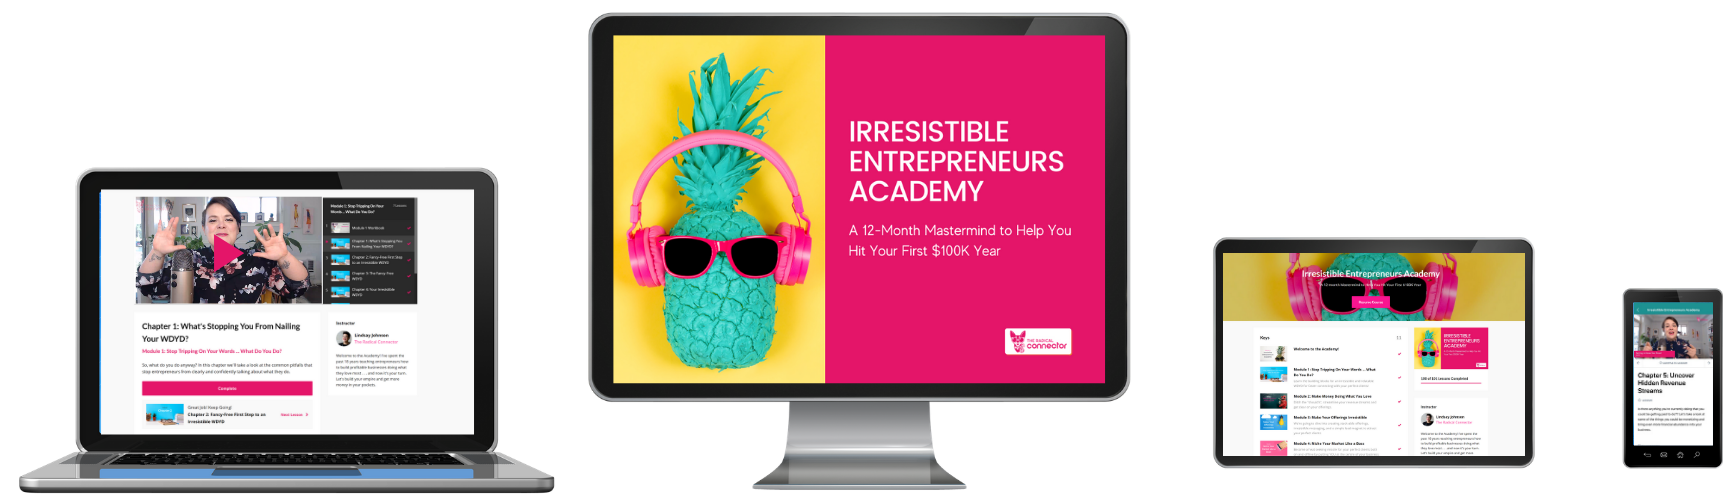 irresistible entrepreneurs academy teaching you how to make your first 100k